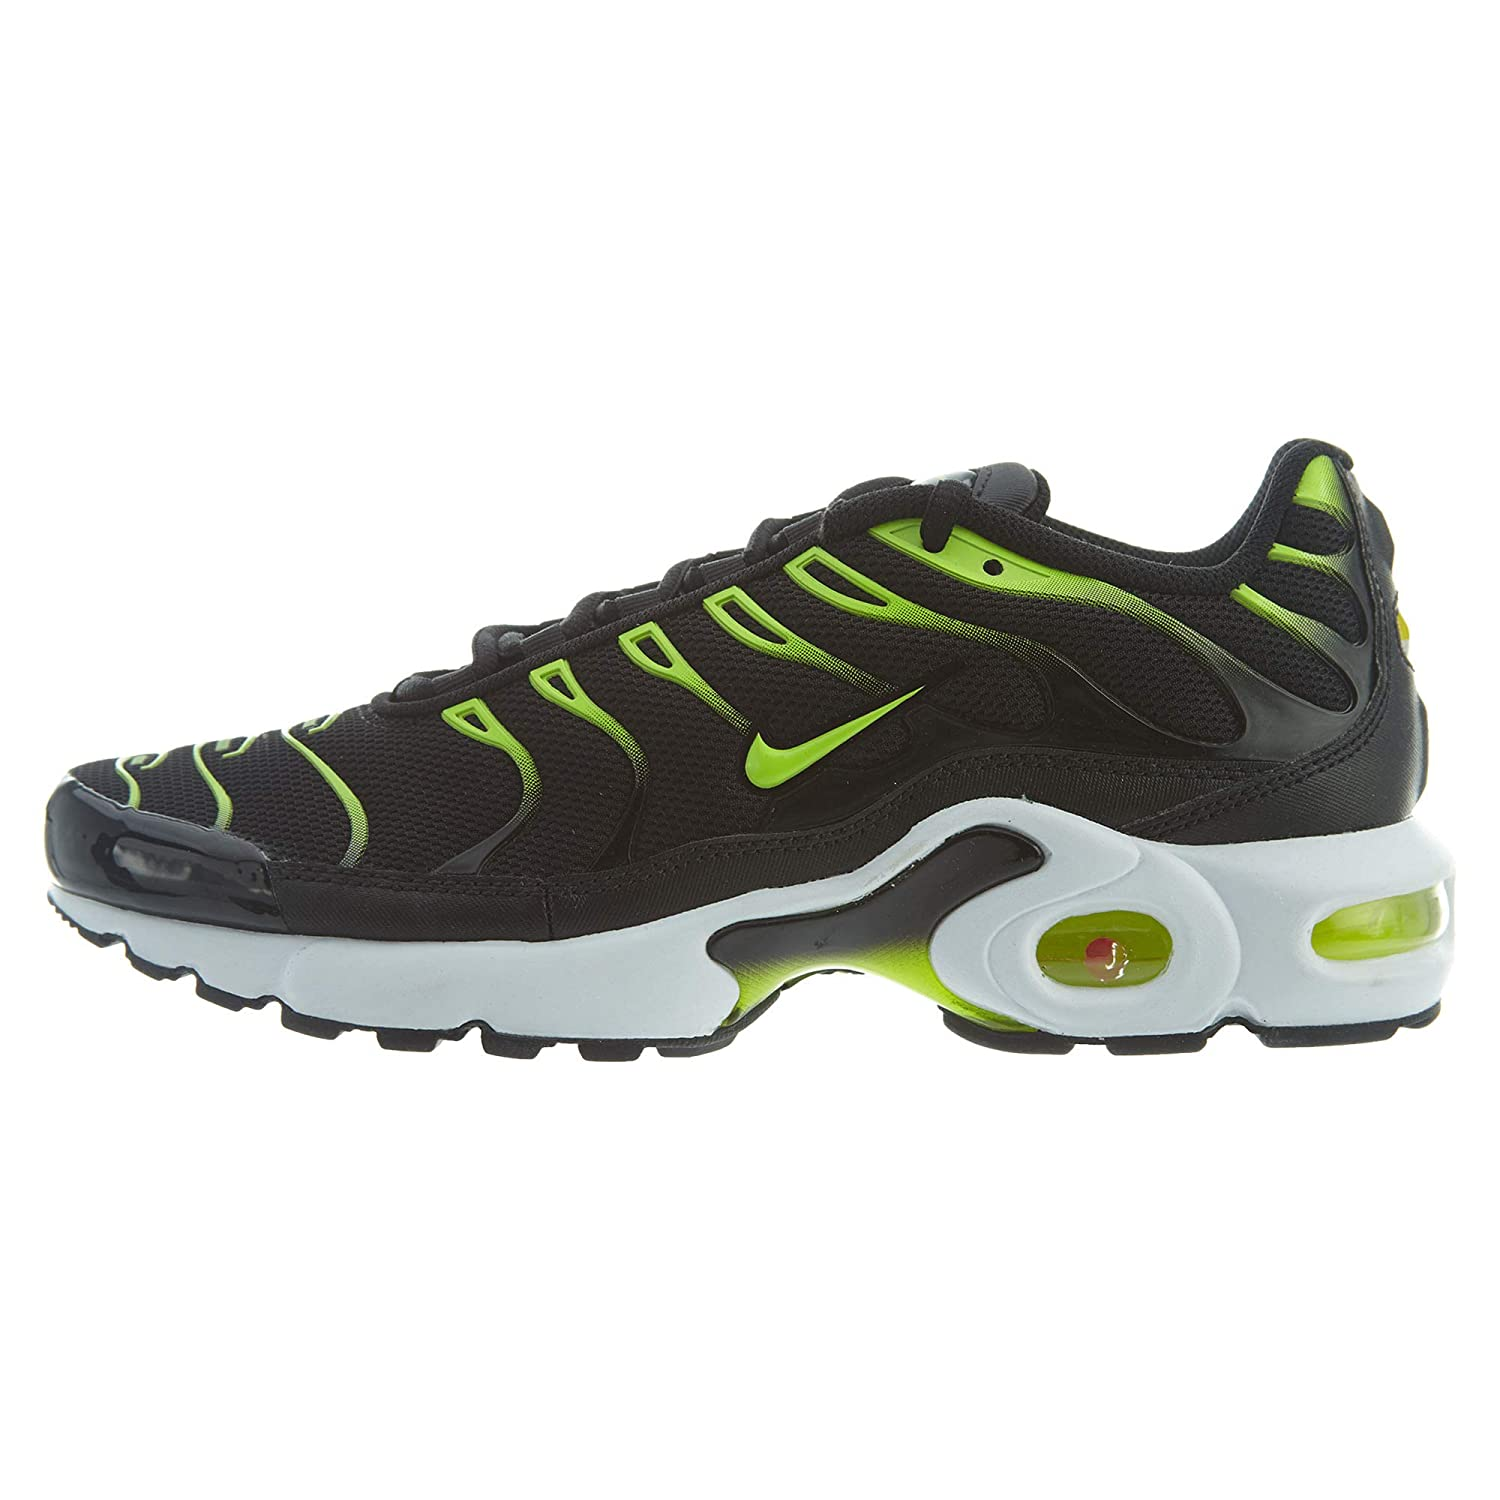 Perfect Nike Air Max Plus Tn Tuned Black Volt 655020 070 Sneakers Men's Sport Running Shoes